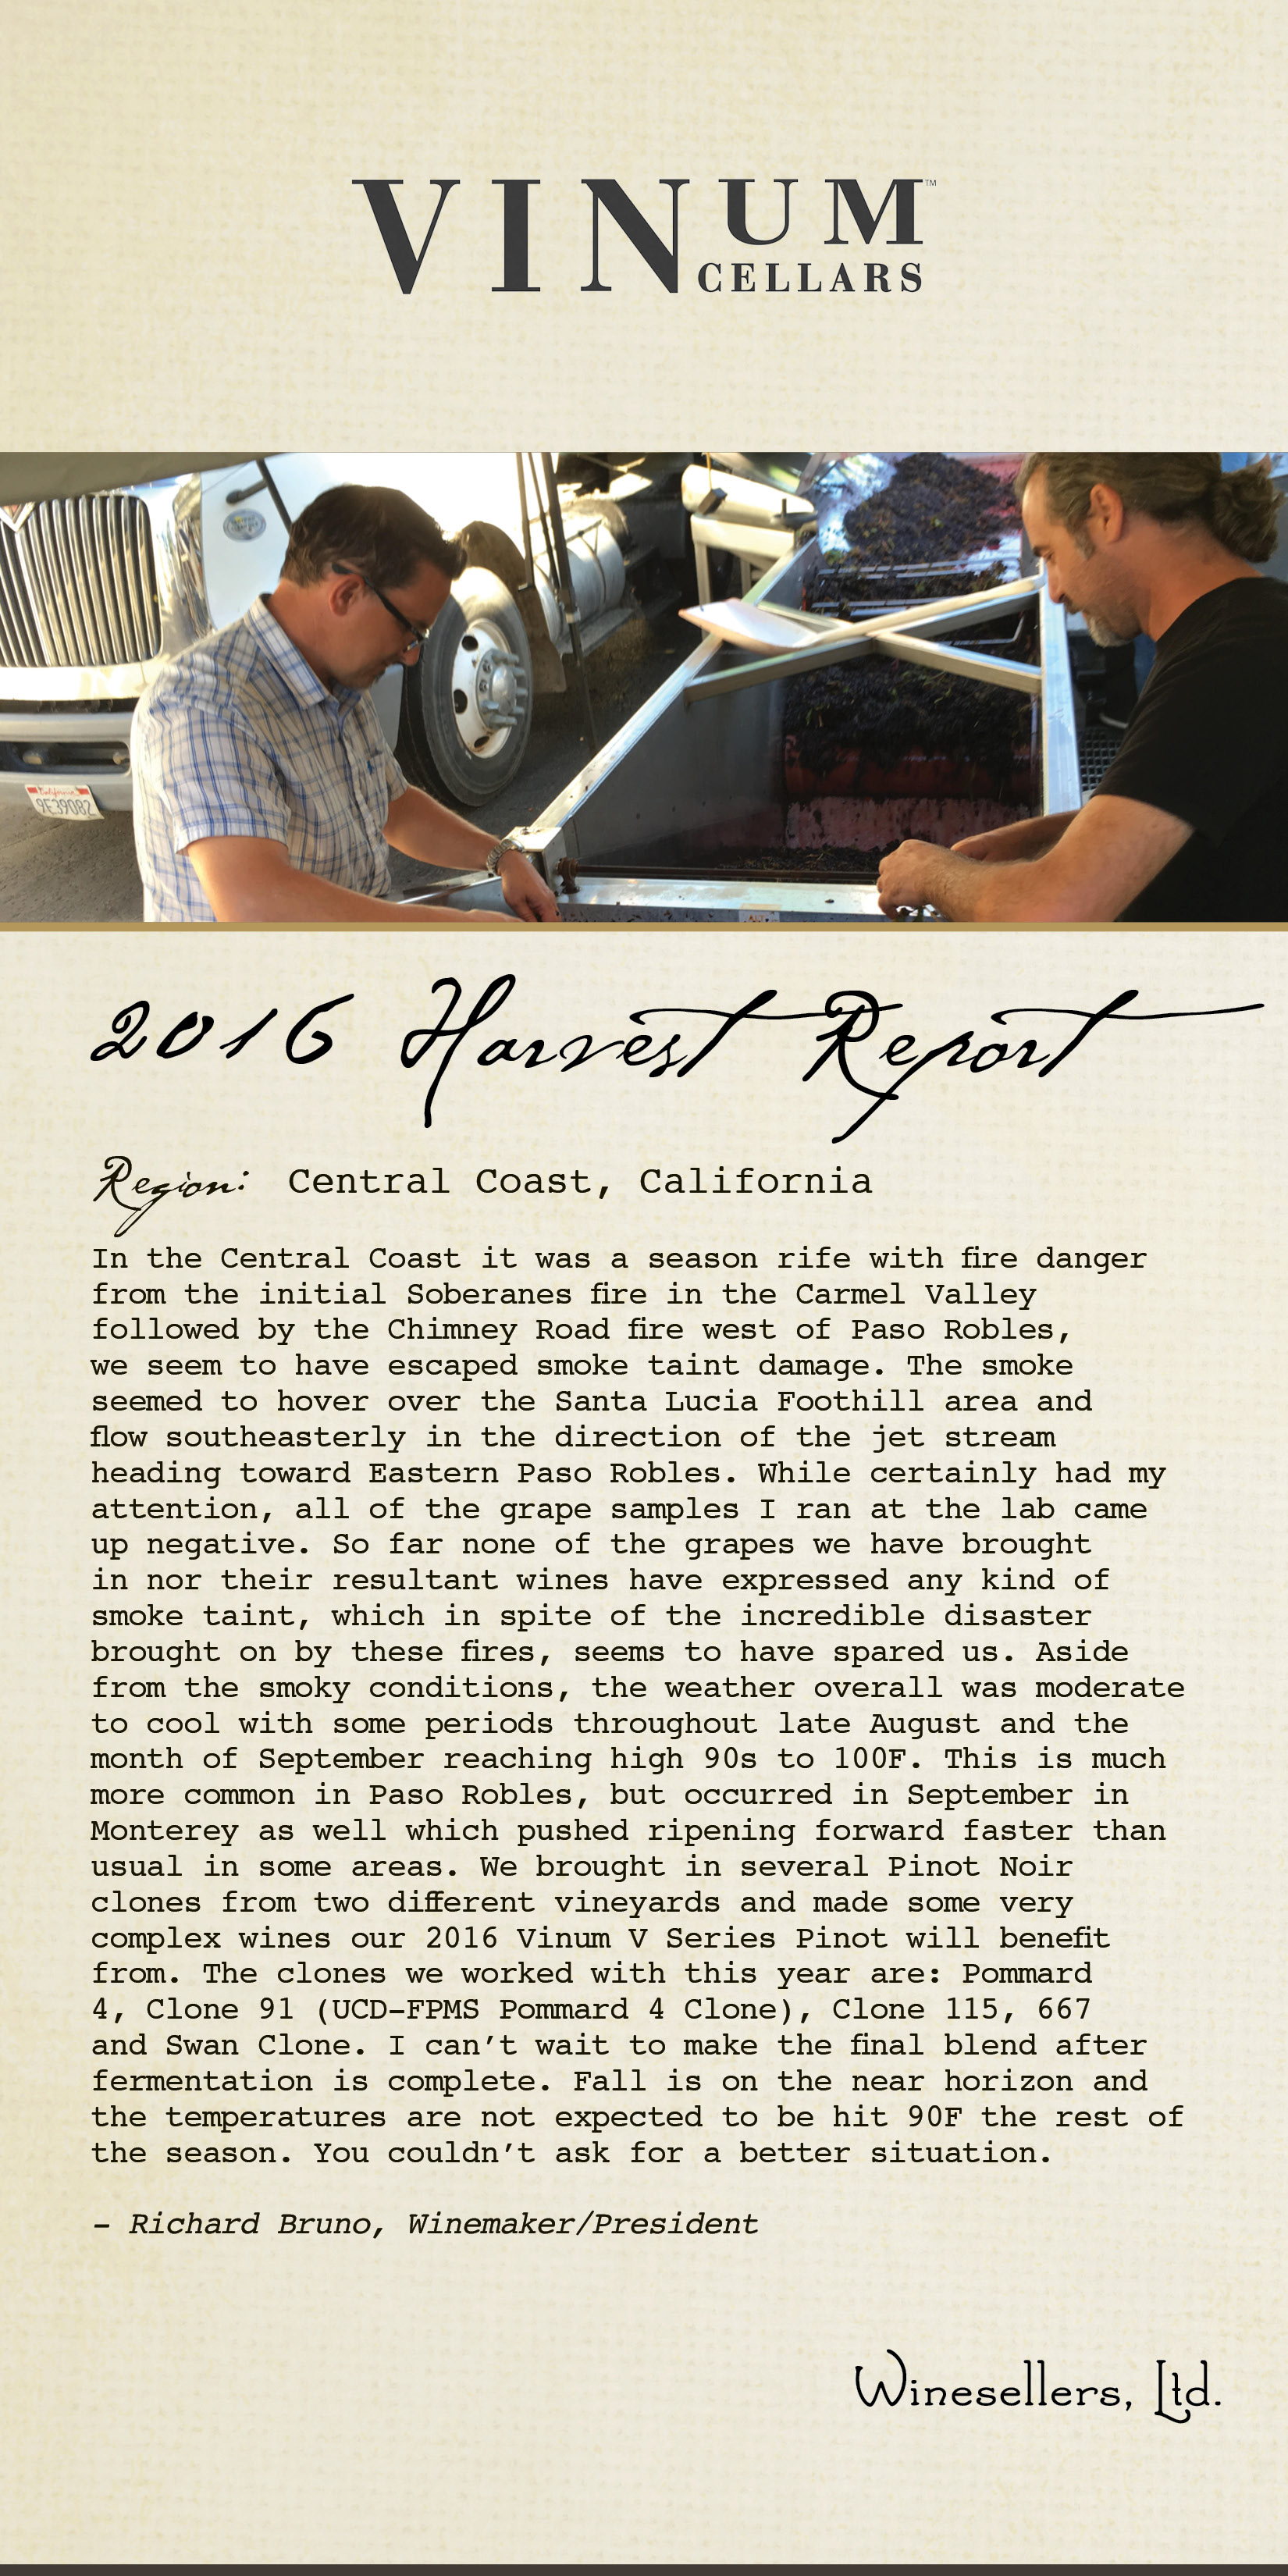 Winesellers, Ltd. Presents Vinum Cellars Central Coast Harvest 2016